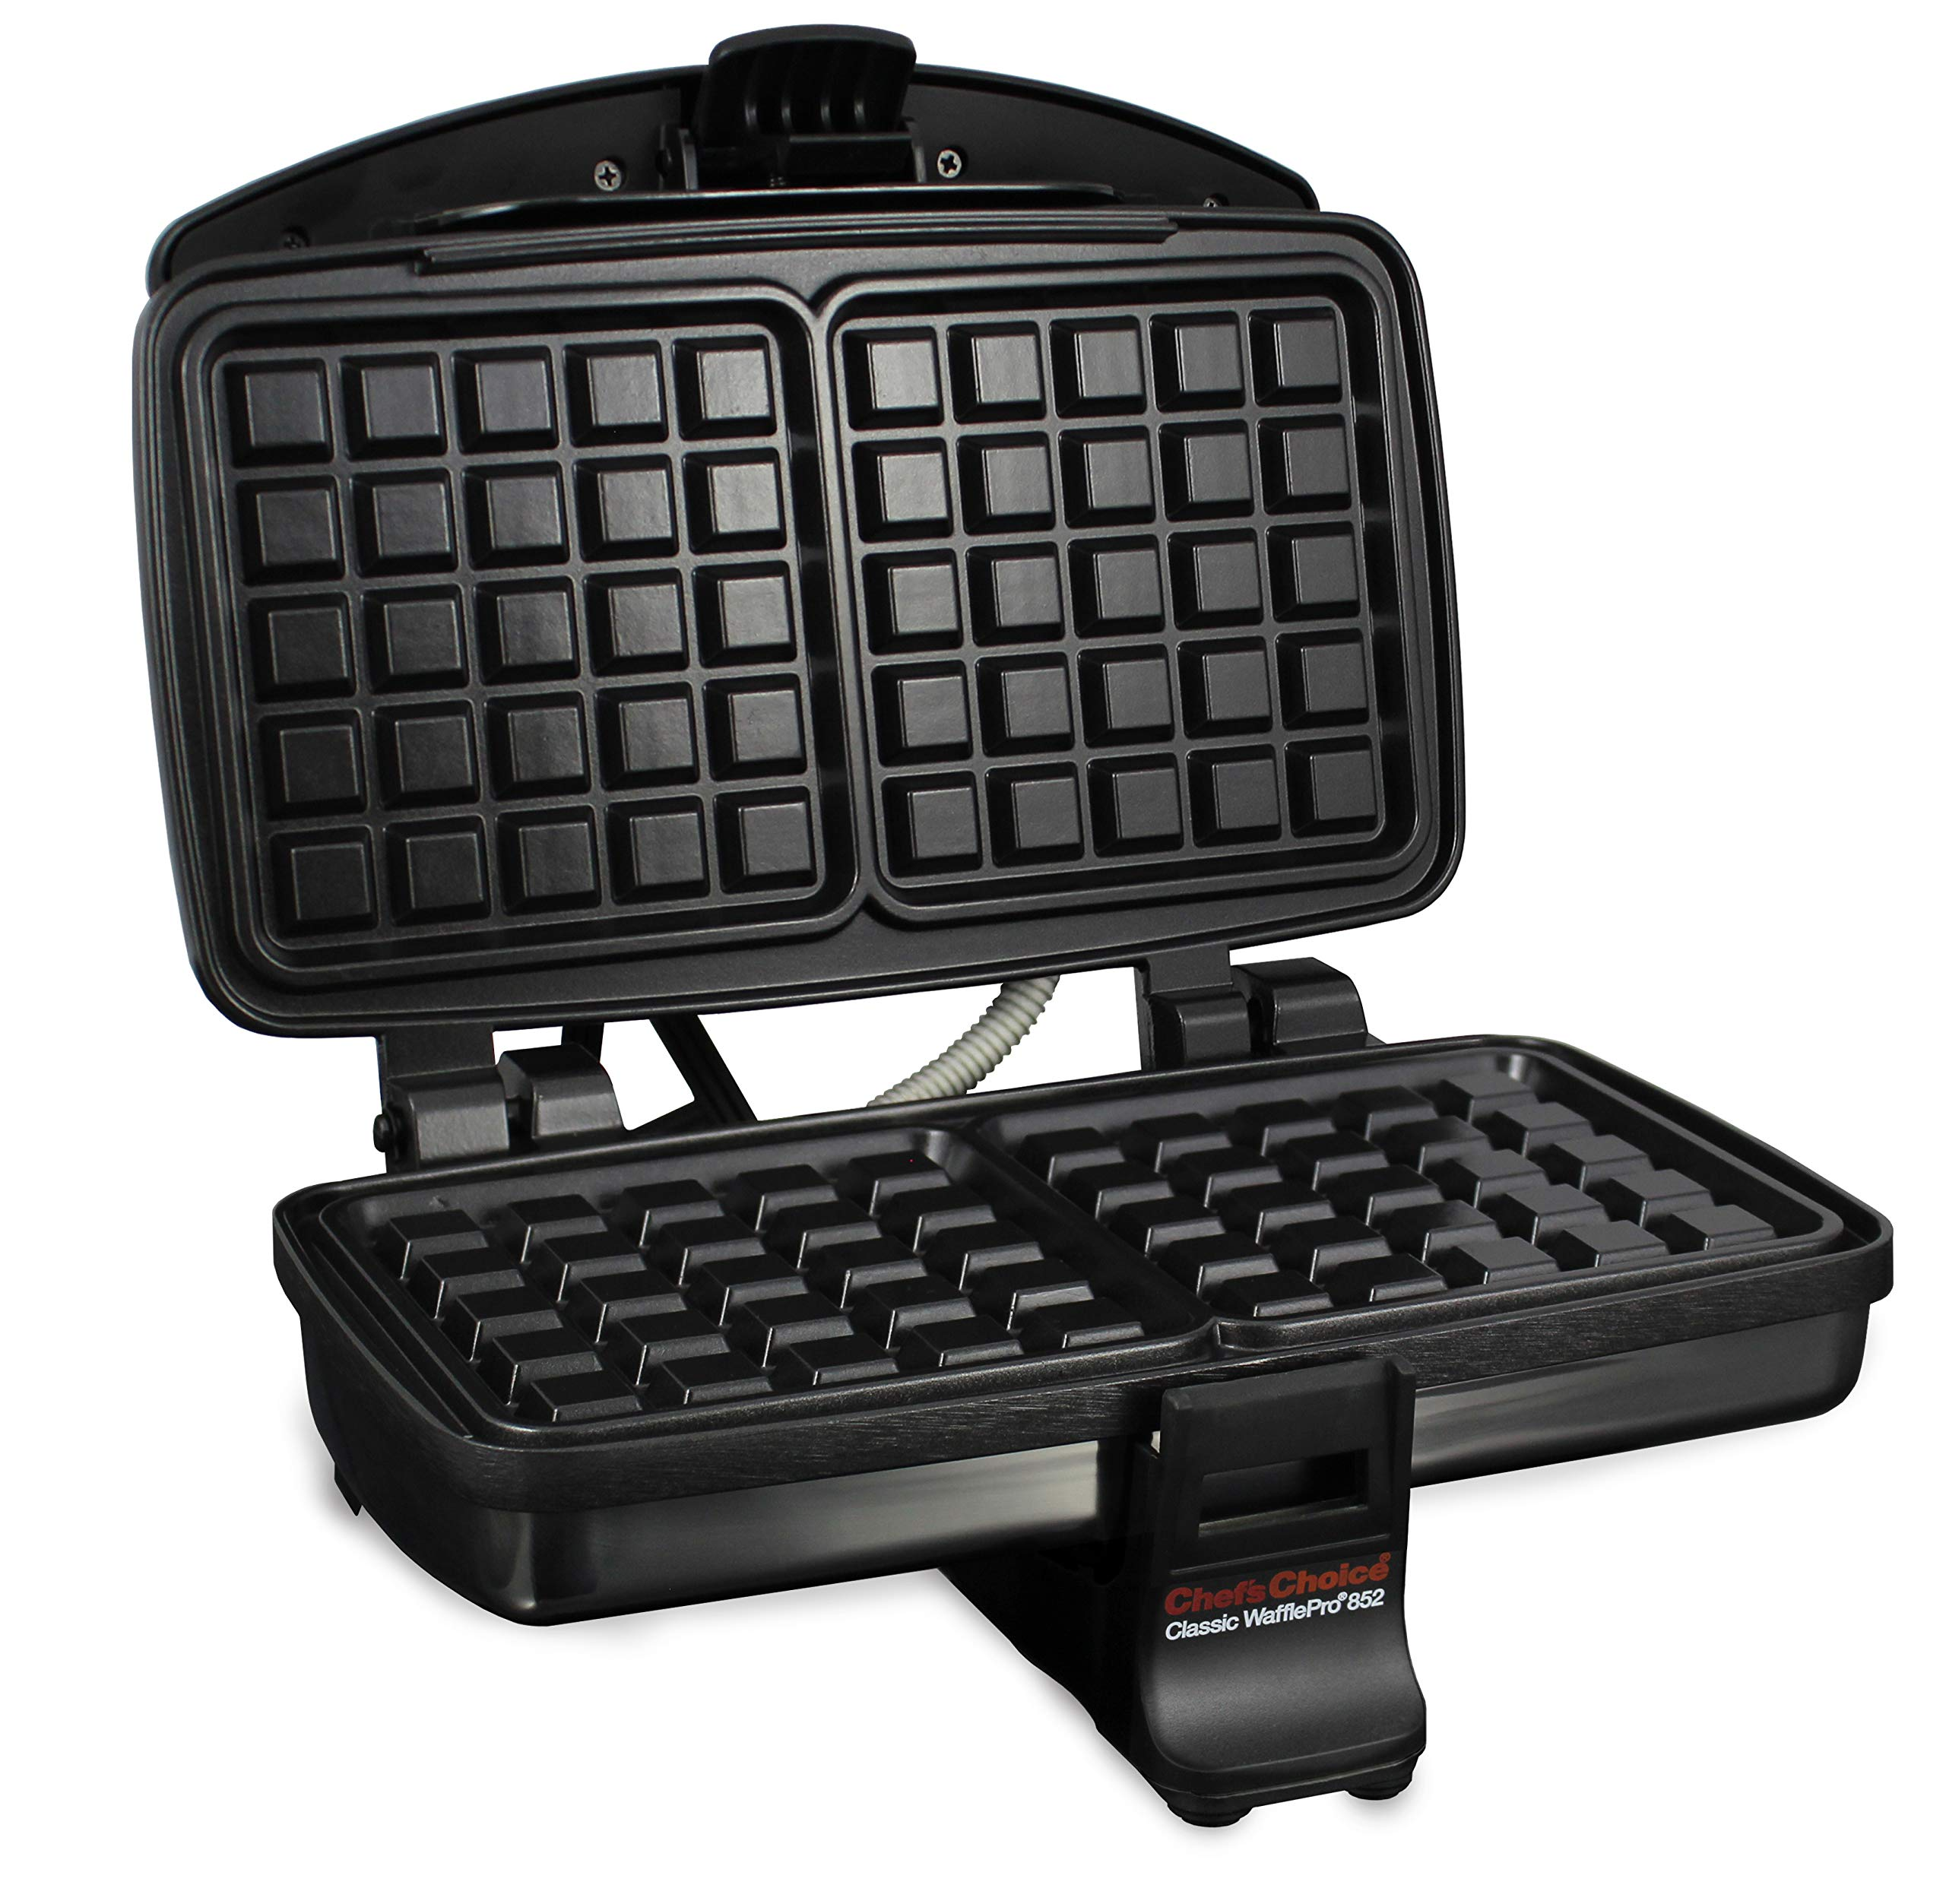 Chef'sChoice 852 Classic WafflePro Nonstick Waffle Maker Features Adjustable Baking Control and Instant Temperature Recovery for Delicious Waffles and Includes Built-in Cord Storage, 2-Square, Silver by Chef'sChoice